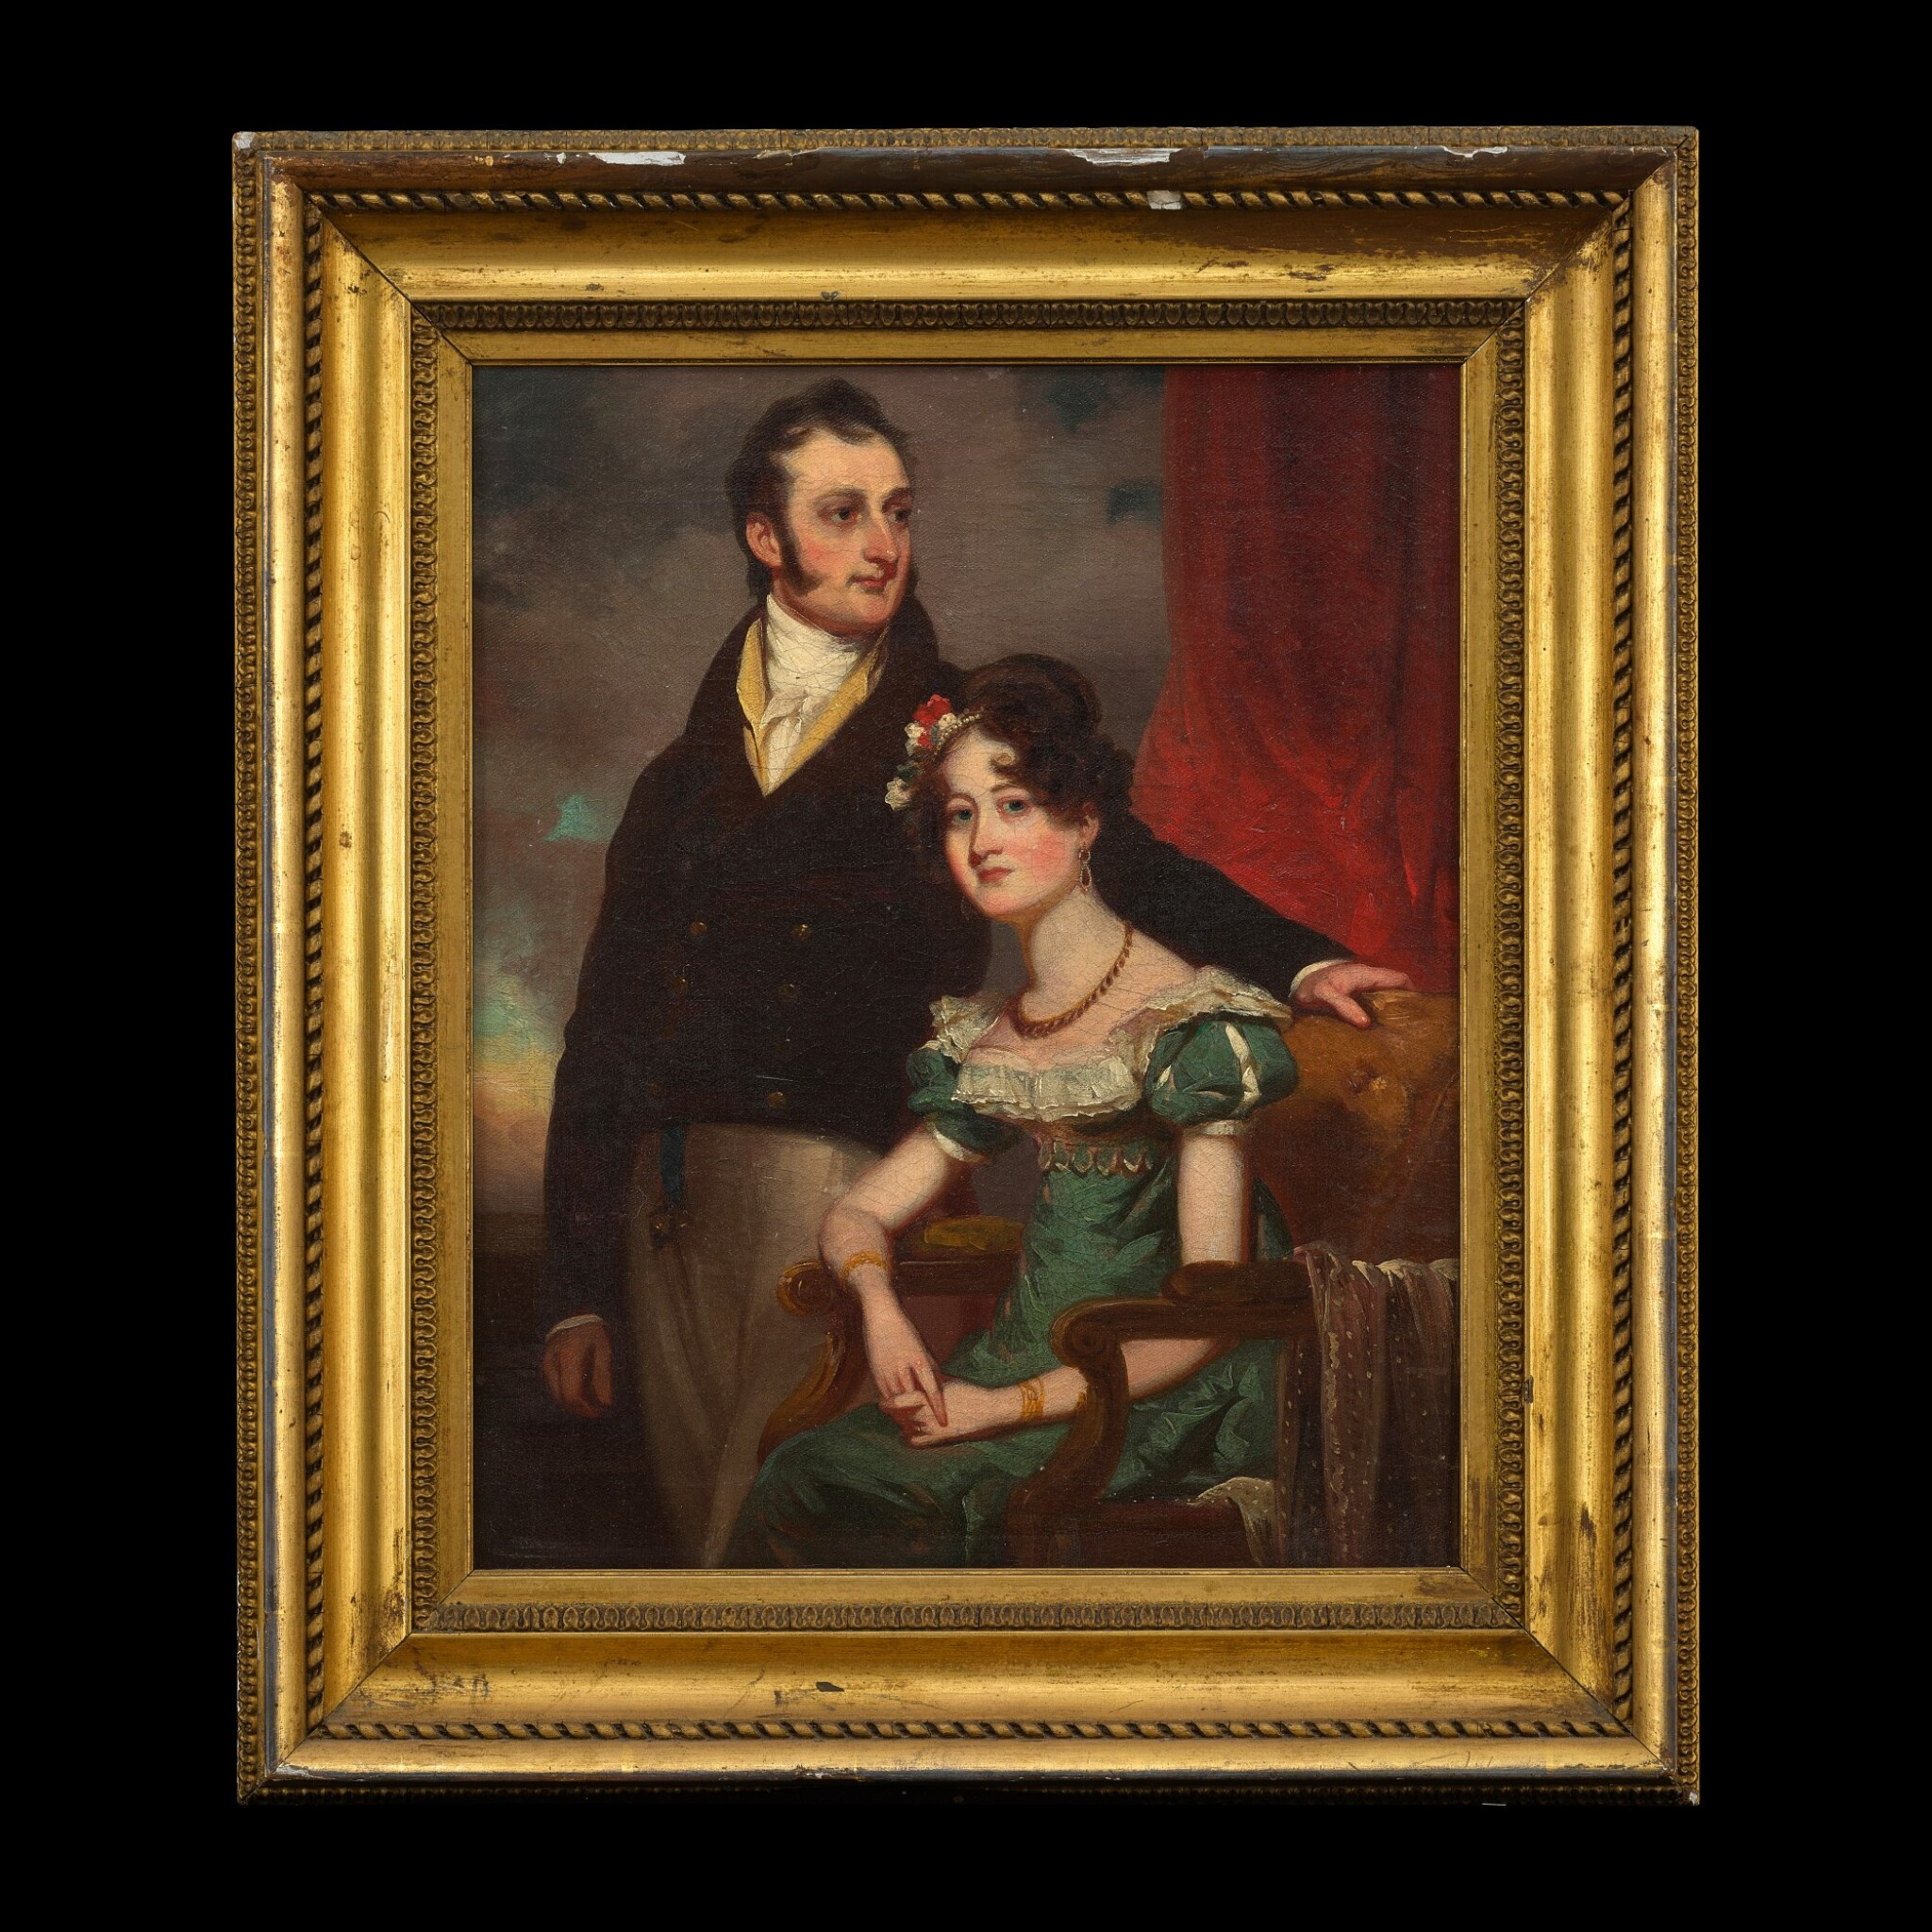 View full screen - View 1 of Lot 212. George Chinnery (1774-1852), circa 1820, Portrait of a Lady and Gentleman | 錢納利(1774-1852年)約1820年   紳士貴婦像 布本油畫 木框.